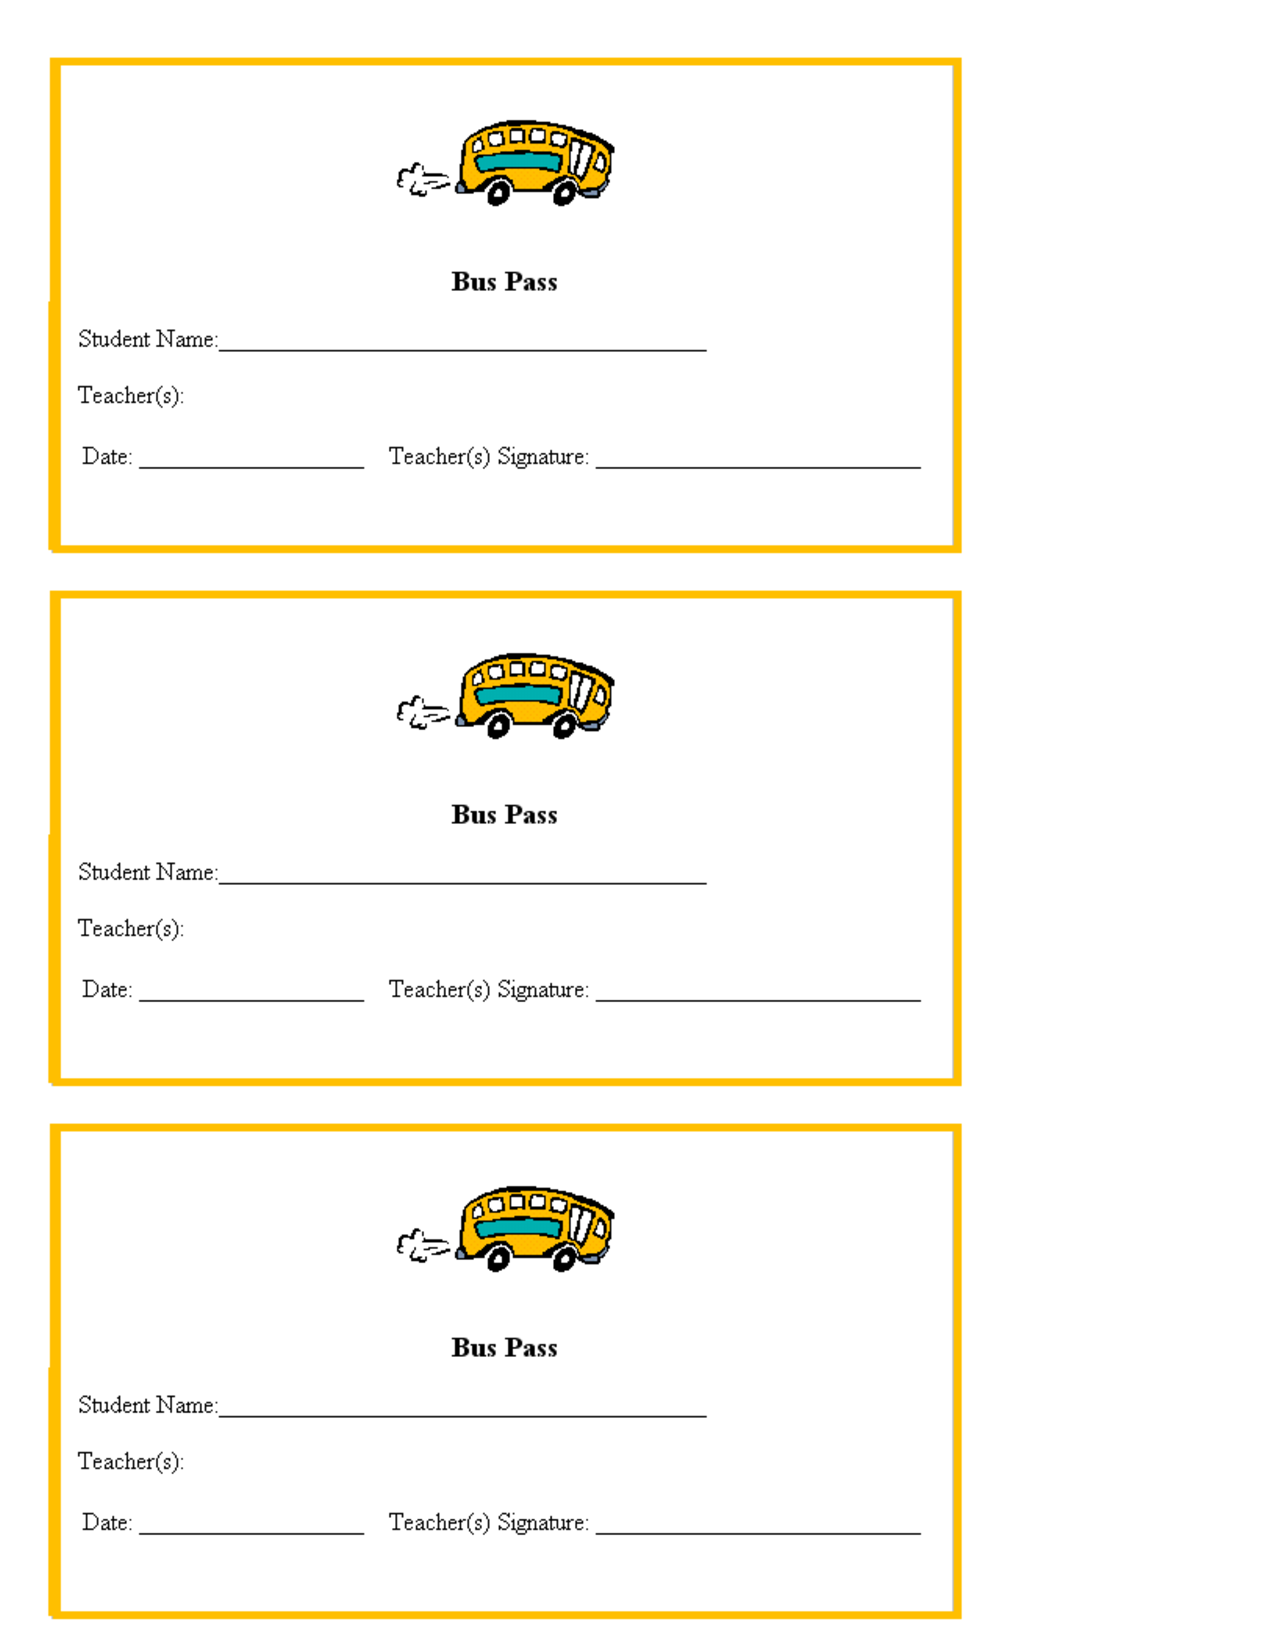 Teacher Printables School Bus Passes Template Form Bus Pass Teacher Printable Teacher Templates